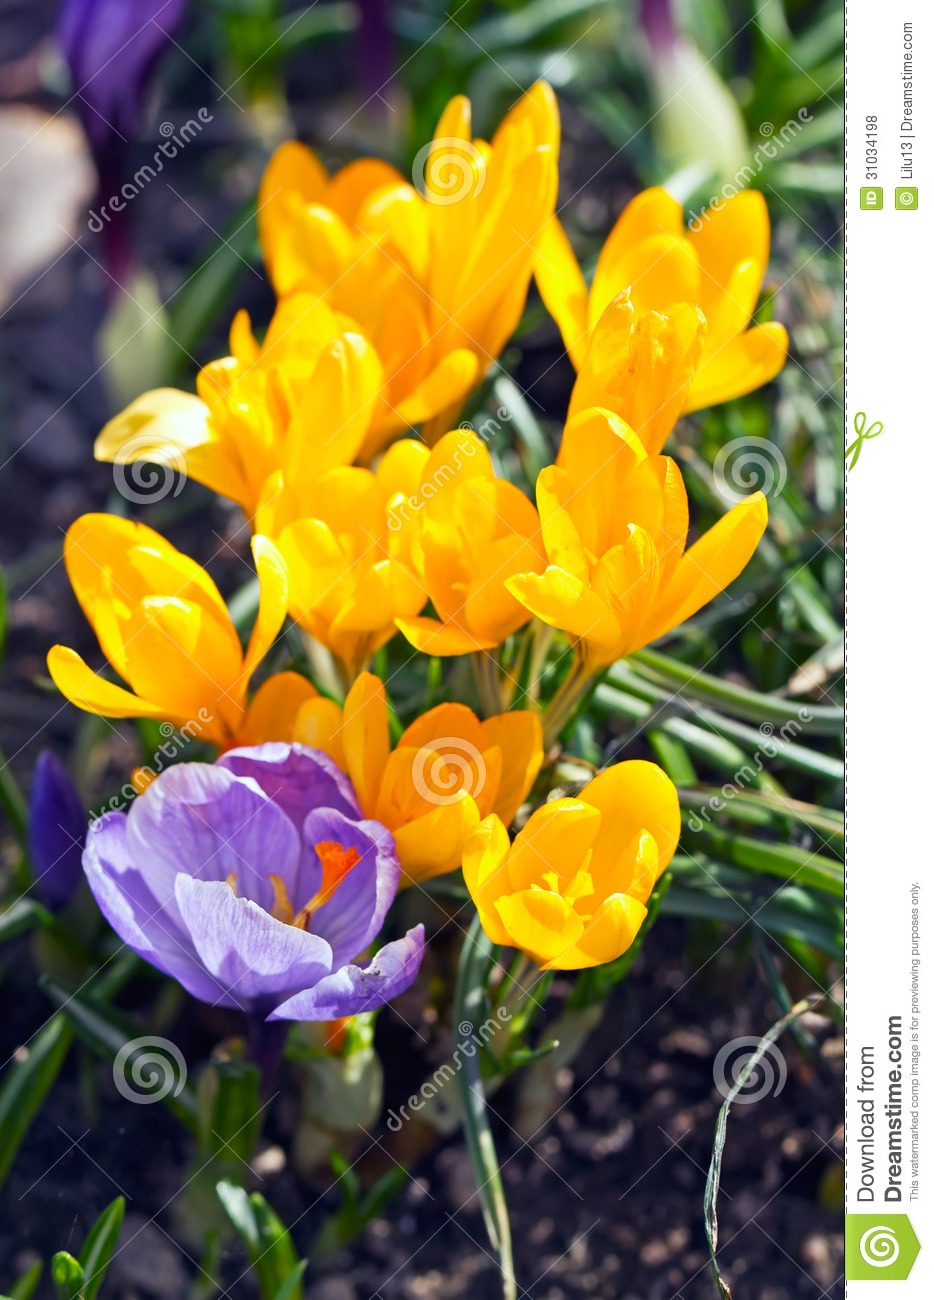 Spring Flowers Vertical Picture Royalty Free Stock Photos